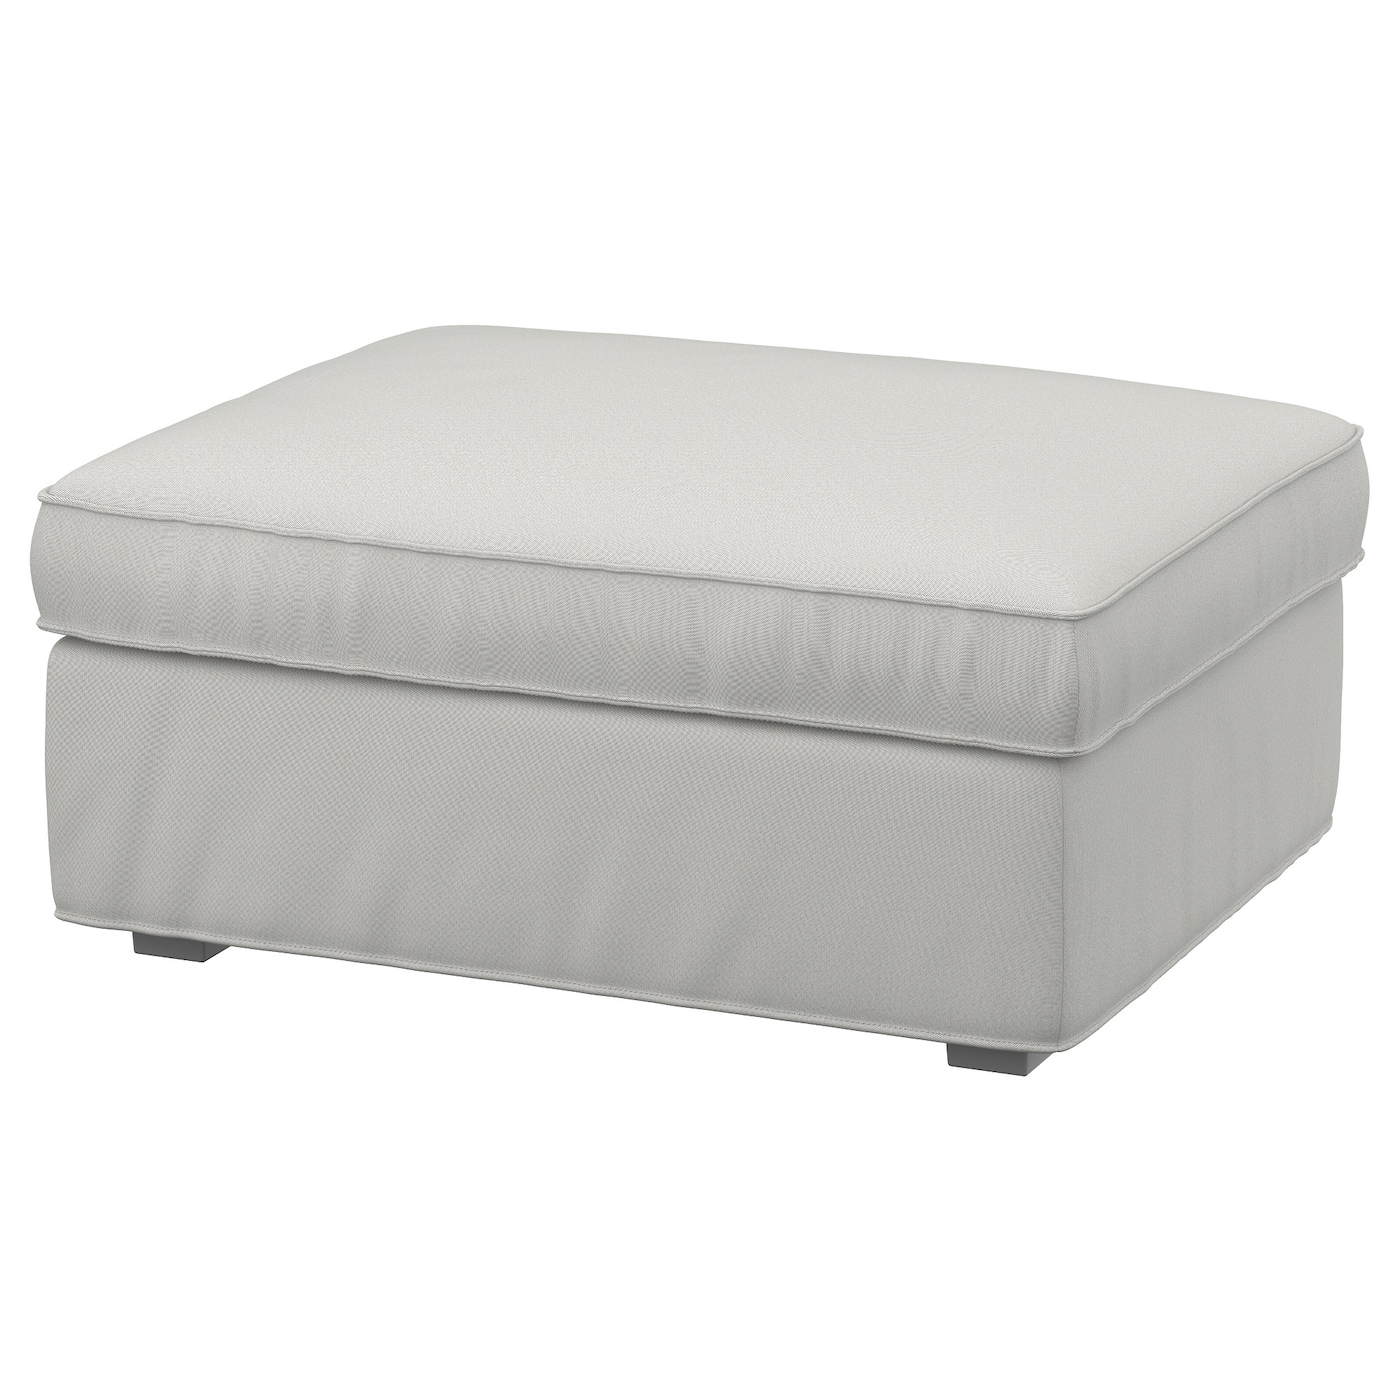 Ikea Kivik Footstool With Storage Practical E Under The Seat